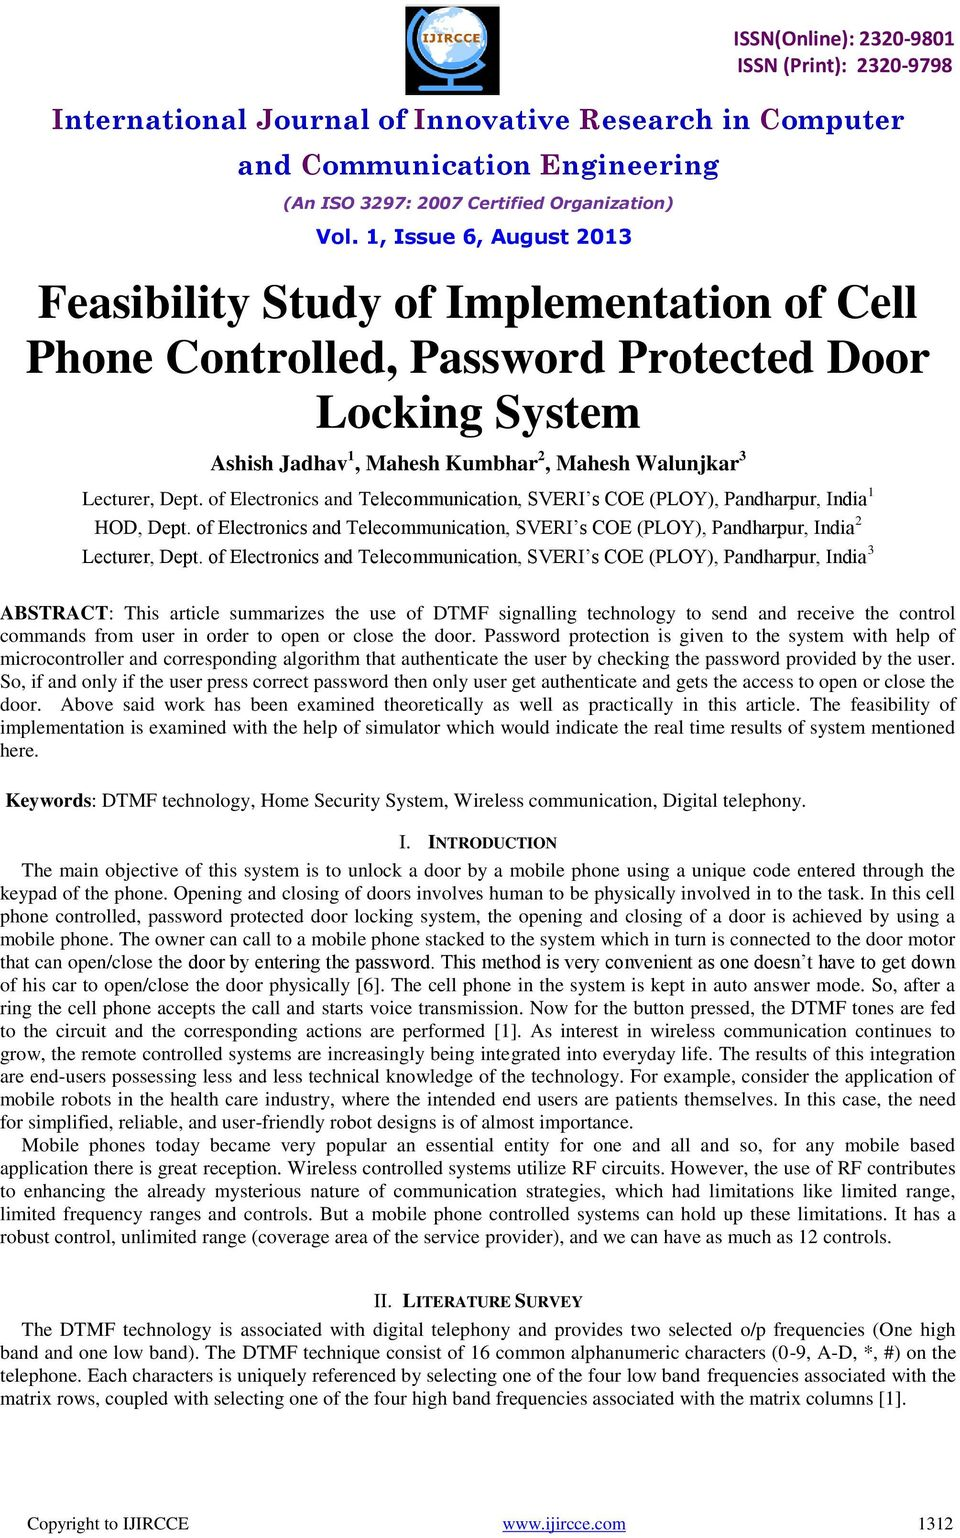 Feasibility Study of Implementation of Cell Phone Controlled ...